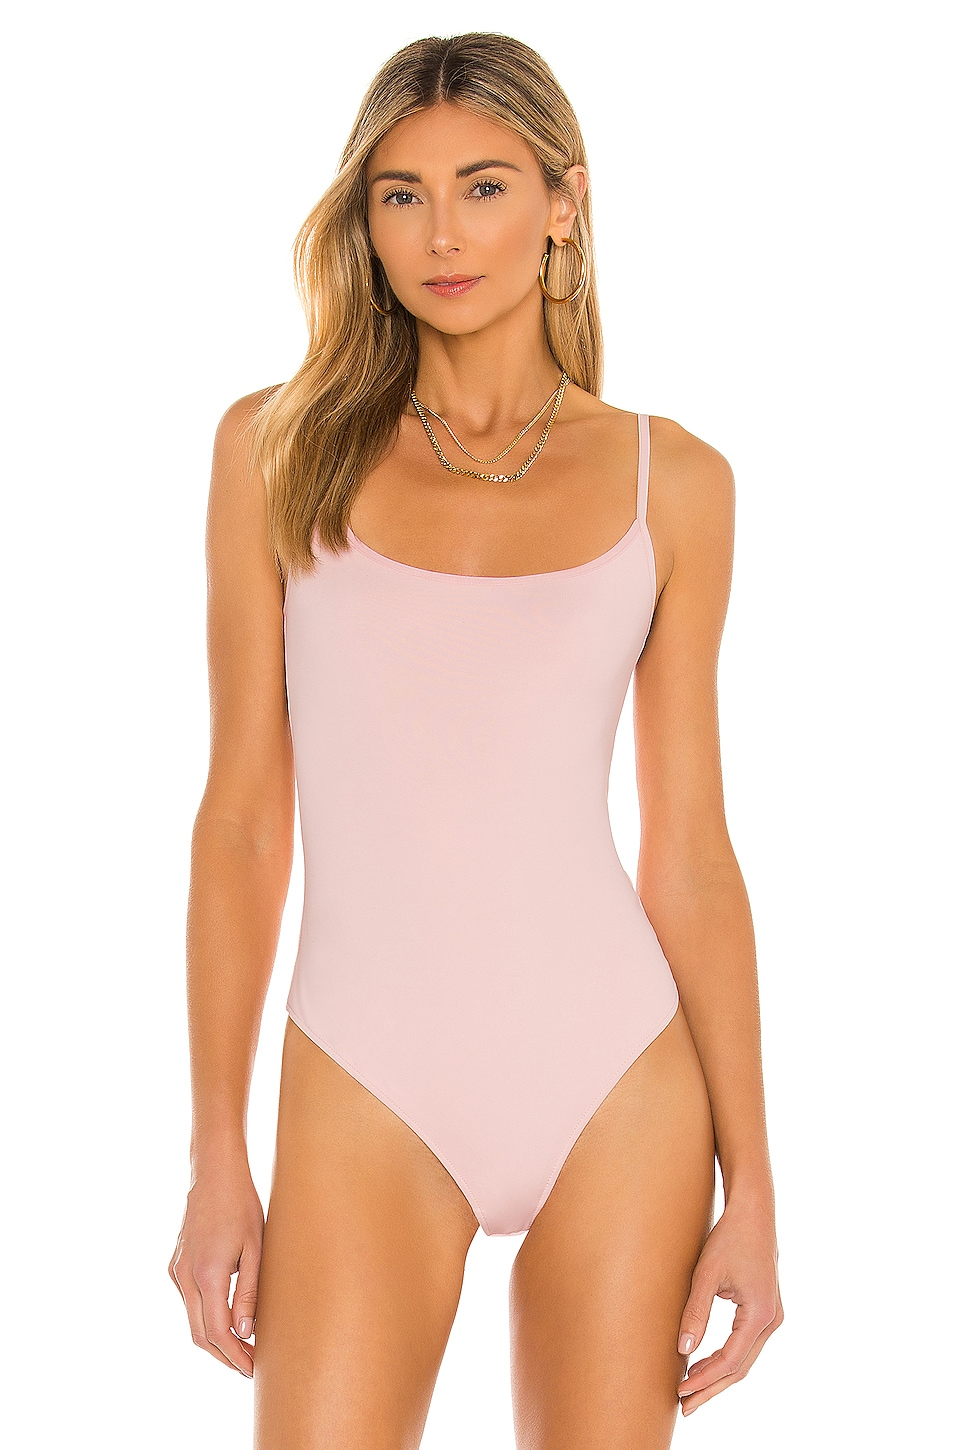 Strappy Basique Bodysuit, view 2, click to view large image.